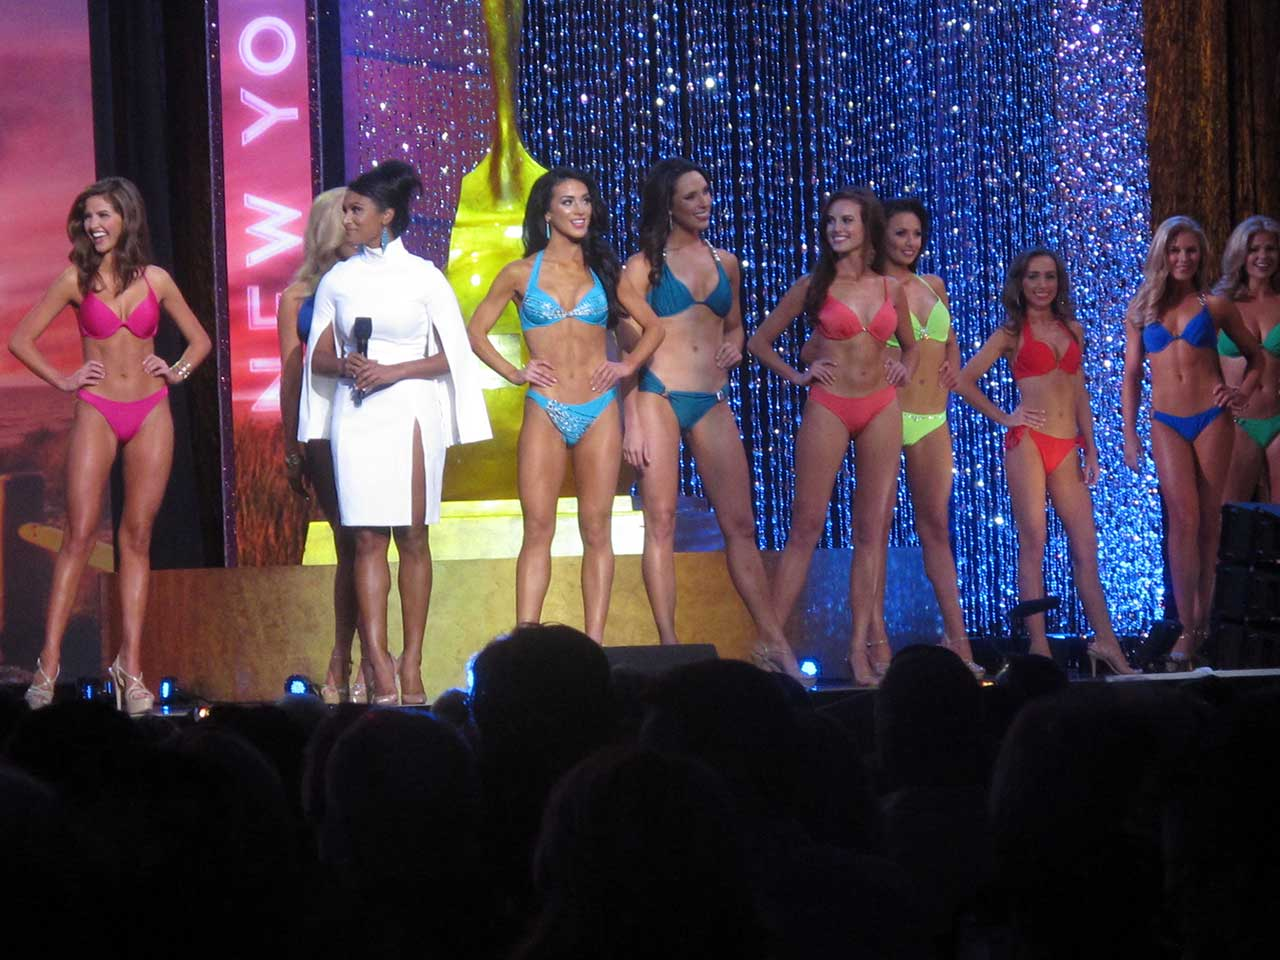 "<div class=""meta image-caption""><div class=""origin-logo origin-image ap""><span>AP</span></div><span class=""caption-text"">Contestants in the 2016 Miss America pageant walk the runway at Boardwalk Hall in Atlantic City, N.J. during preliminary competition. (AP Photo/Wayne Parry)</span></div>"